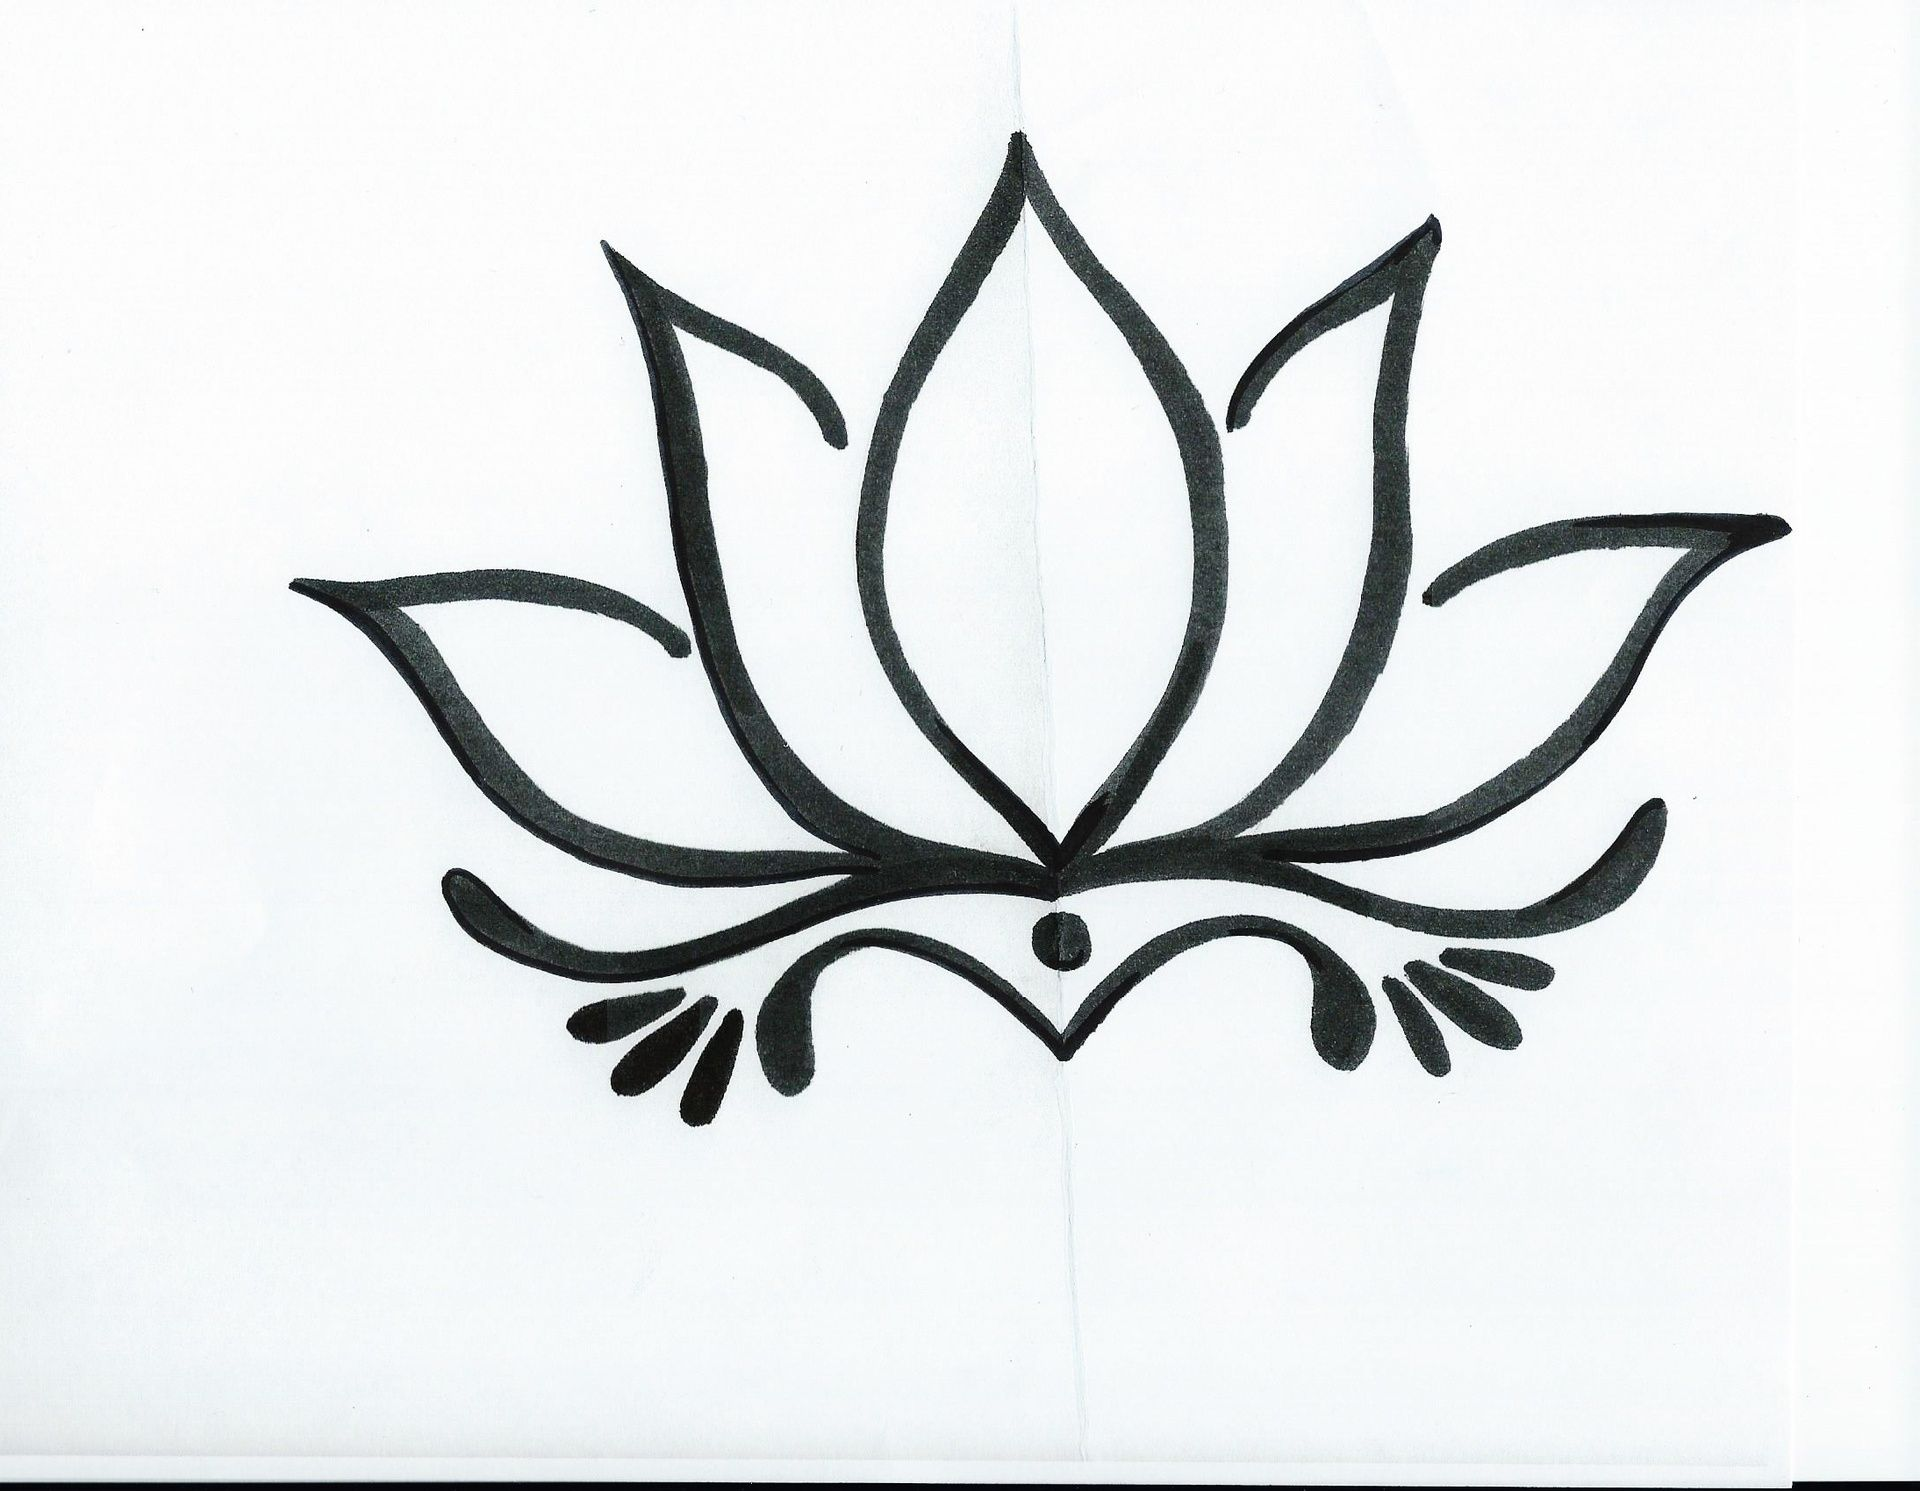 ascending lotus tattoo tattoos ideas inspirations pinterest lotus flower drawings. Black Bedroom Furniture Sets. Home Design Ideas